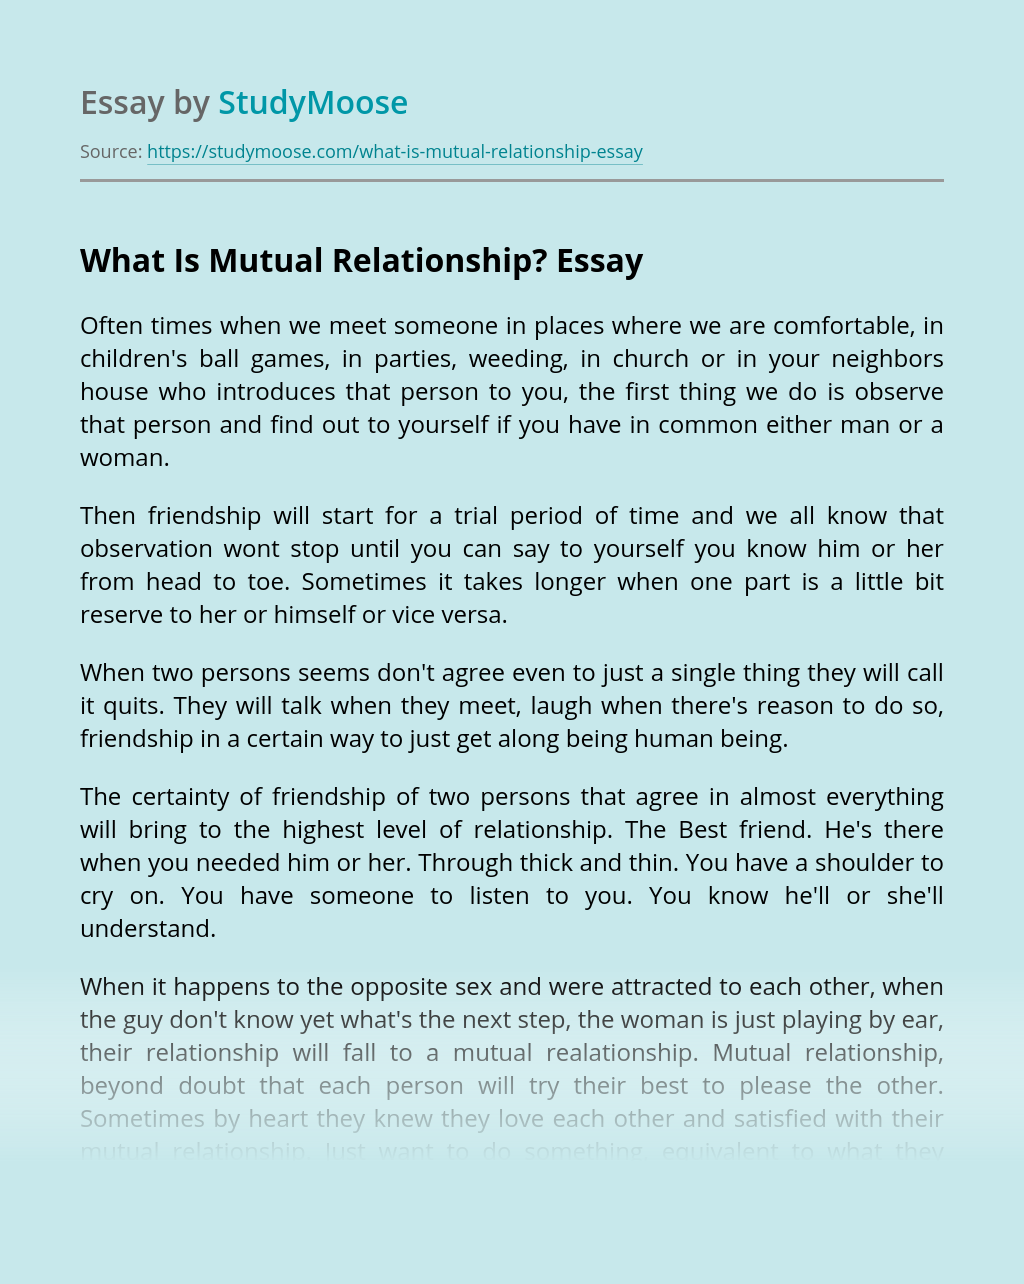 What Is Mutual Relationship?